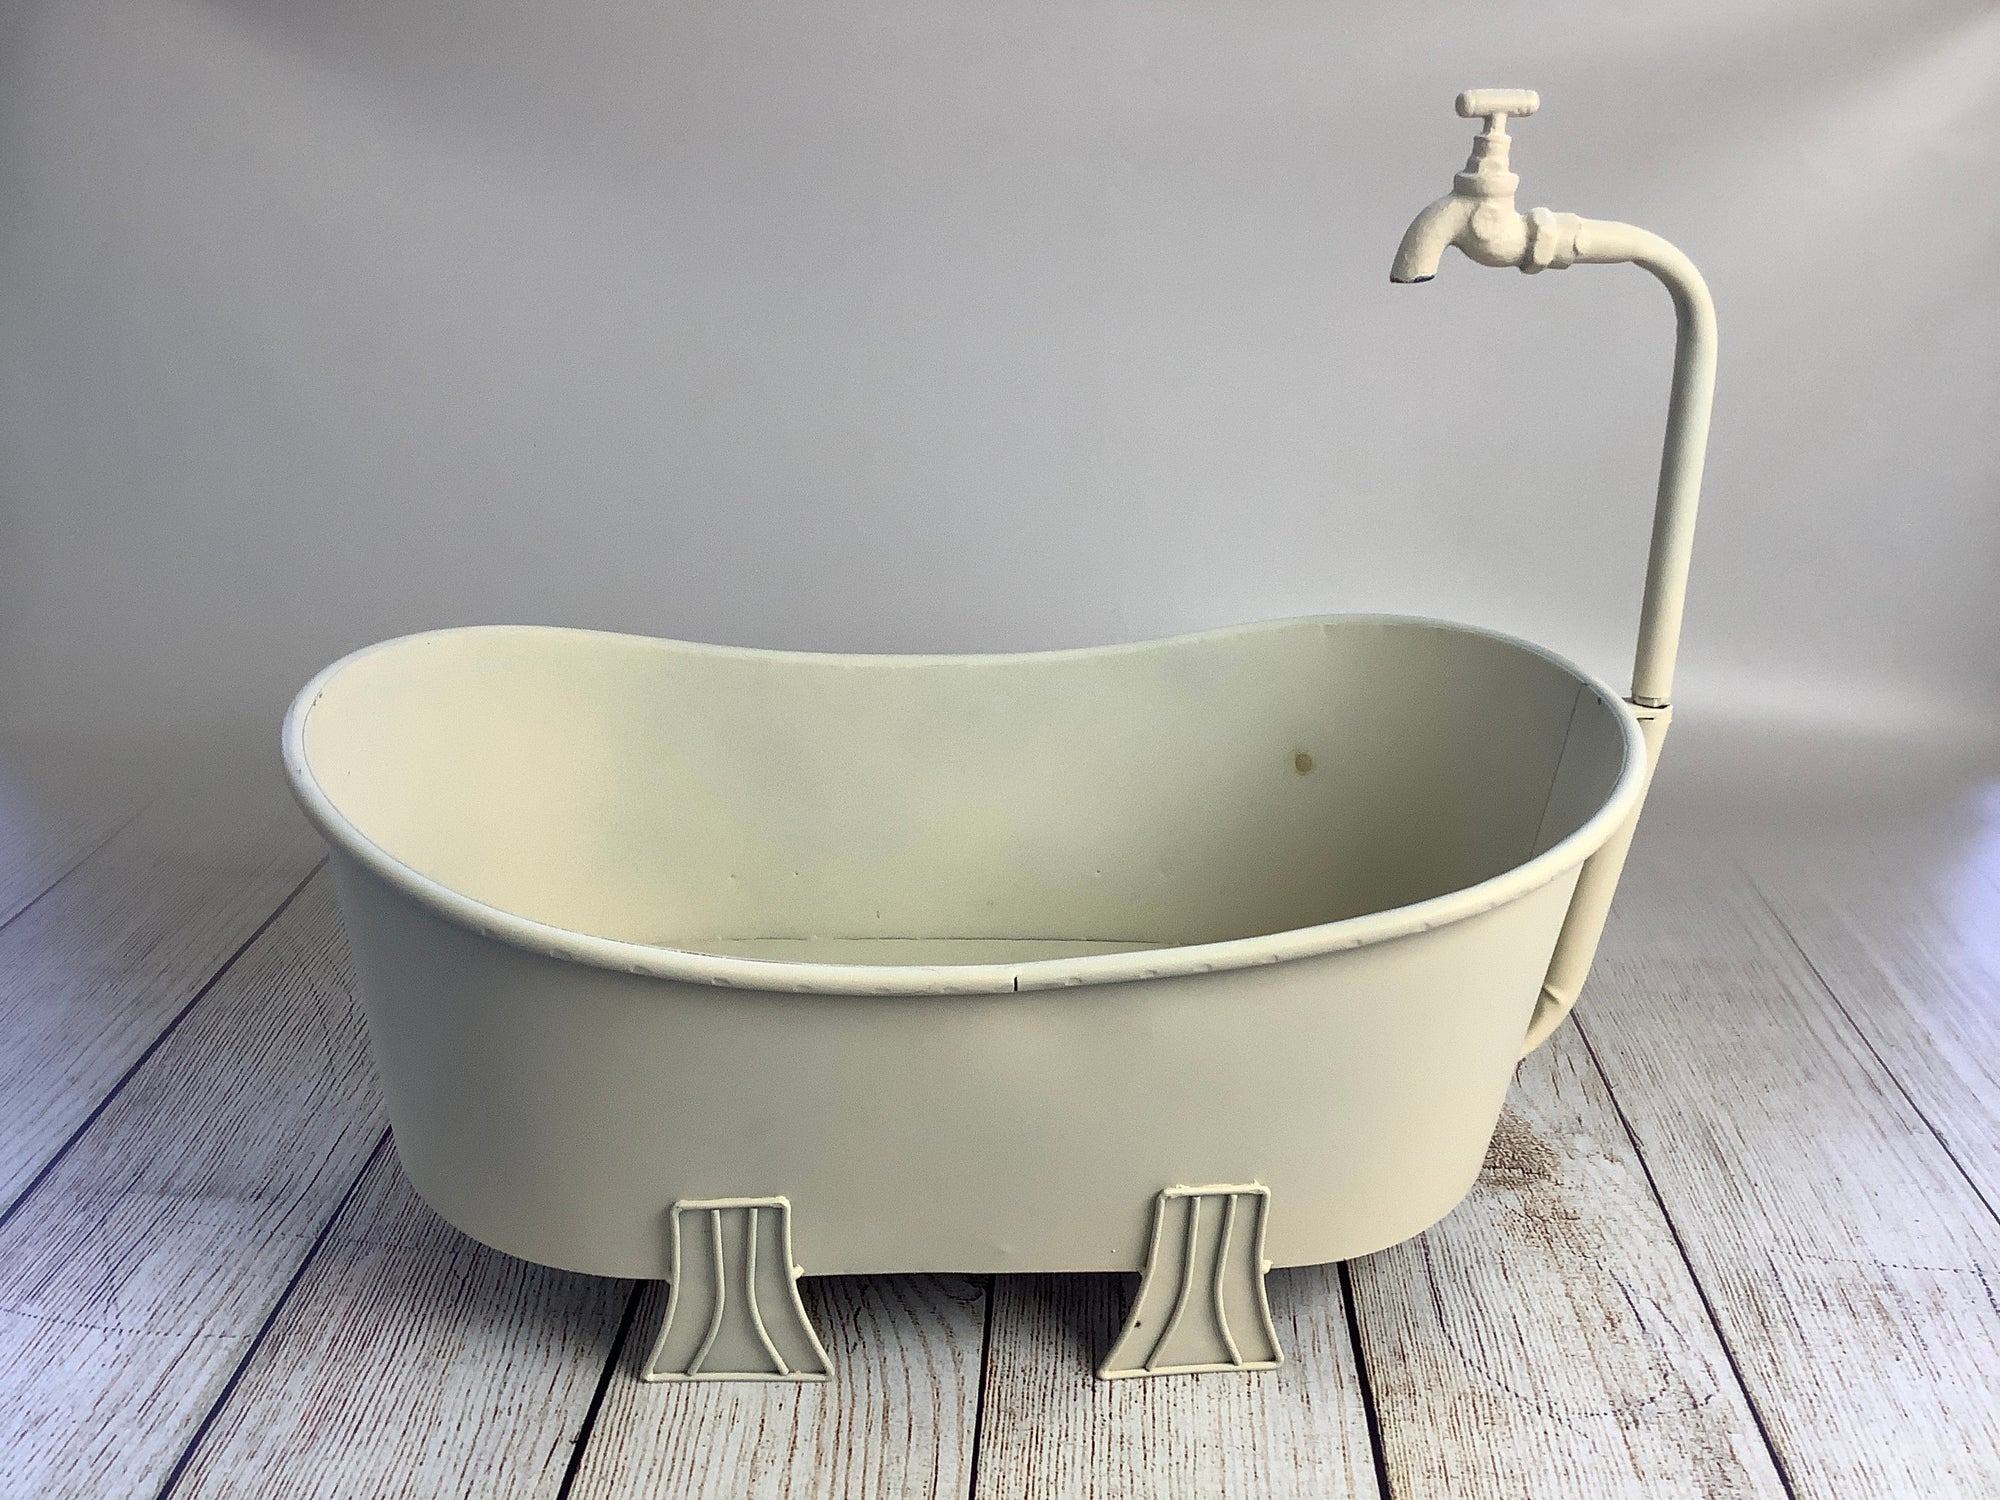 Footed Vintage Bathtub - Beige - Model 2 (AS IS ITEM)